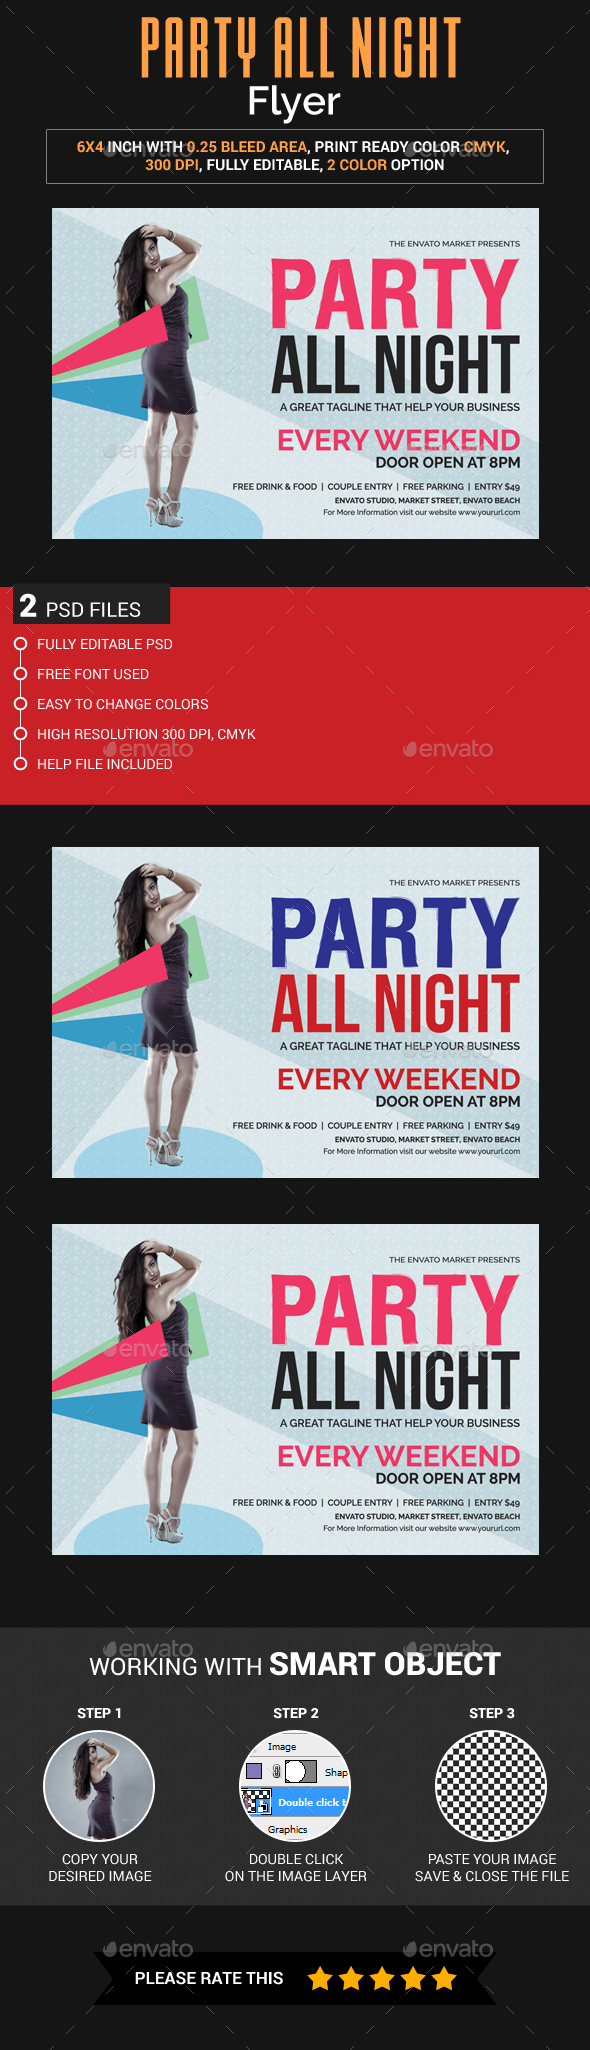 Party All Night Flyer - Clubs & Parties Events